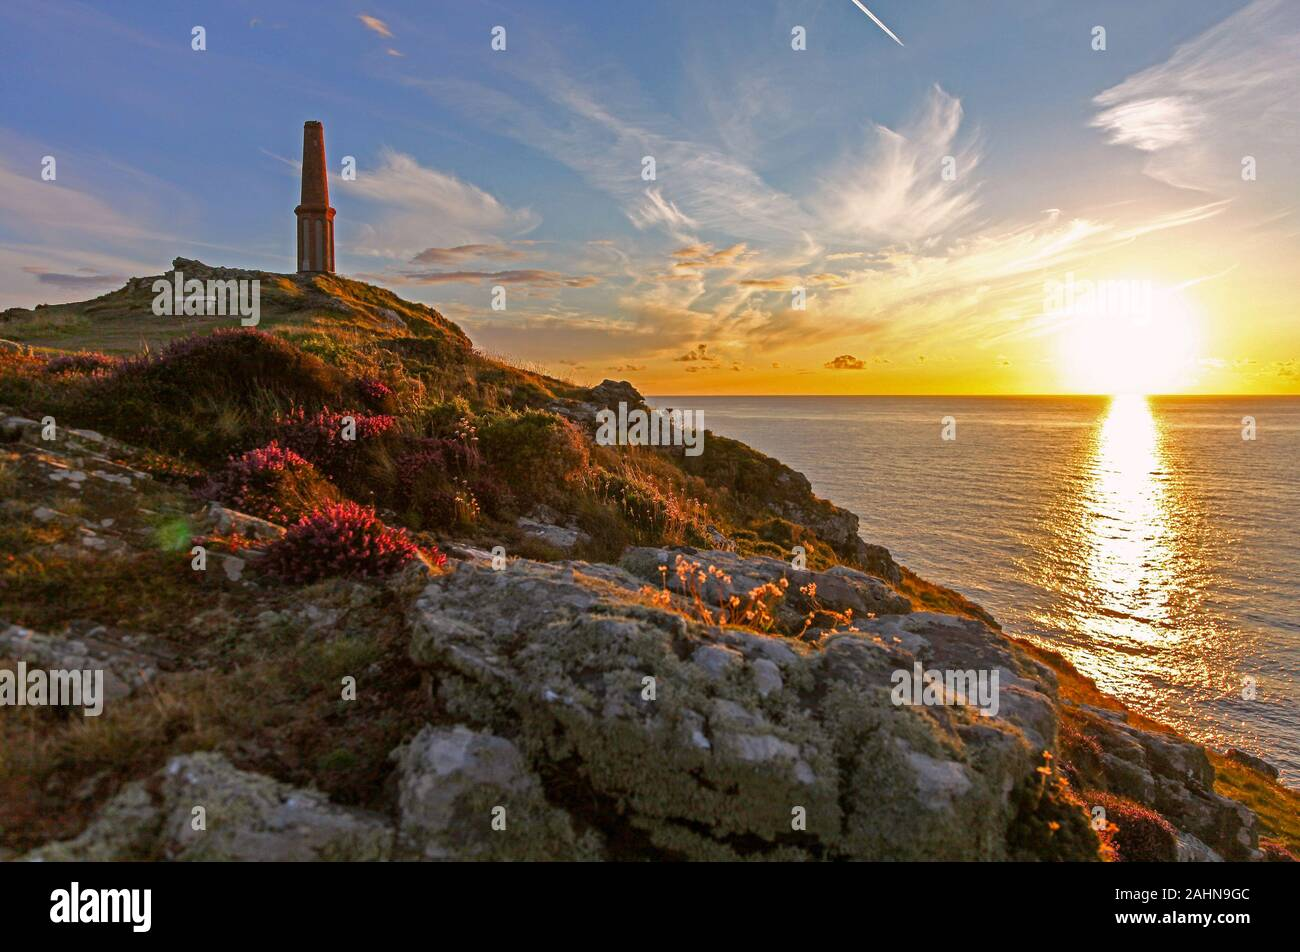 the-setting-sun-at-cape-cornwall-cornwall-south-west-england-uk-2AHN9GC.jpg